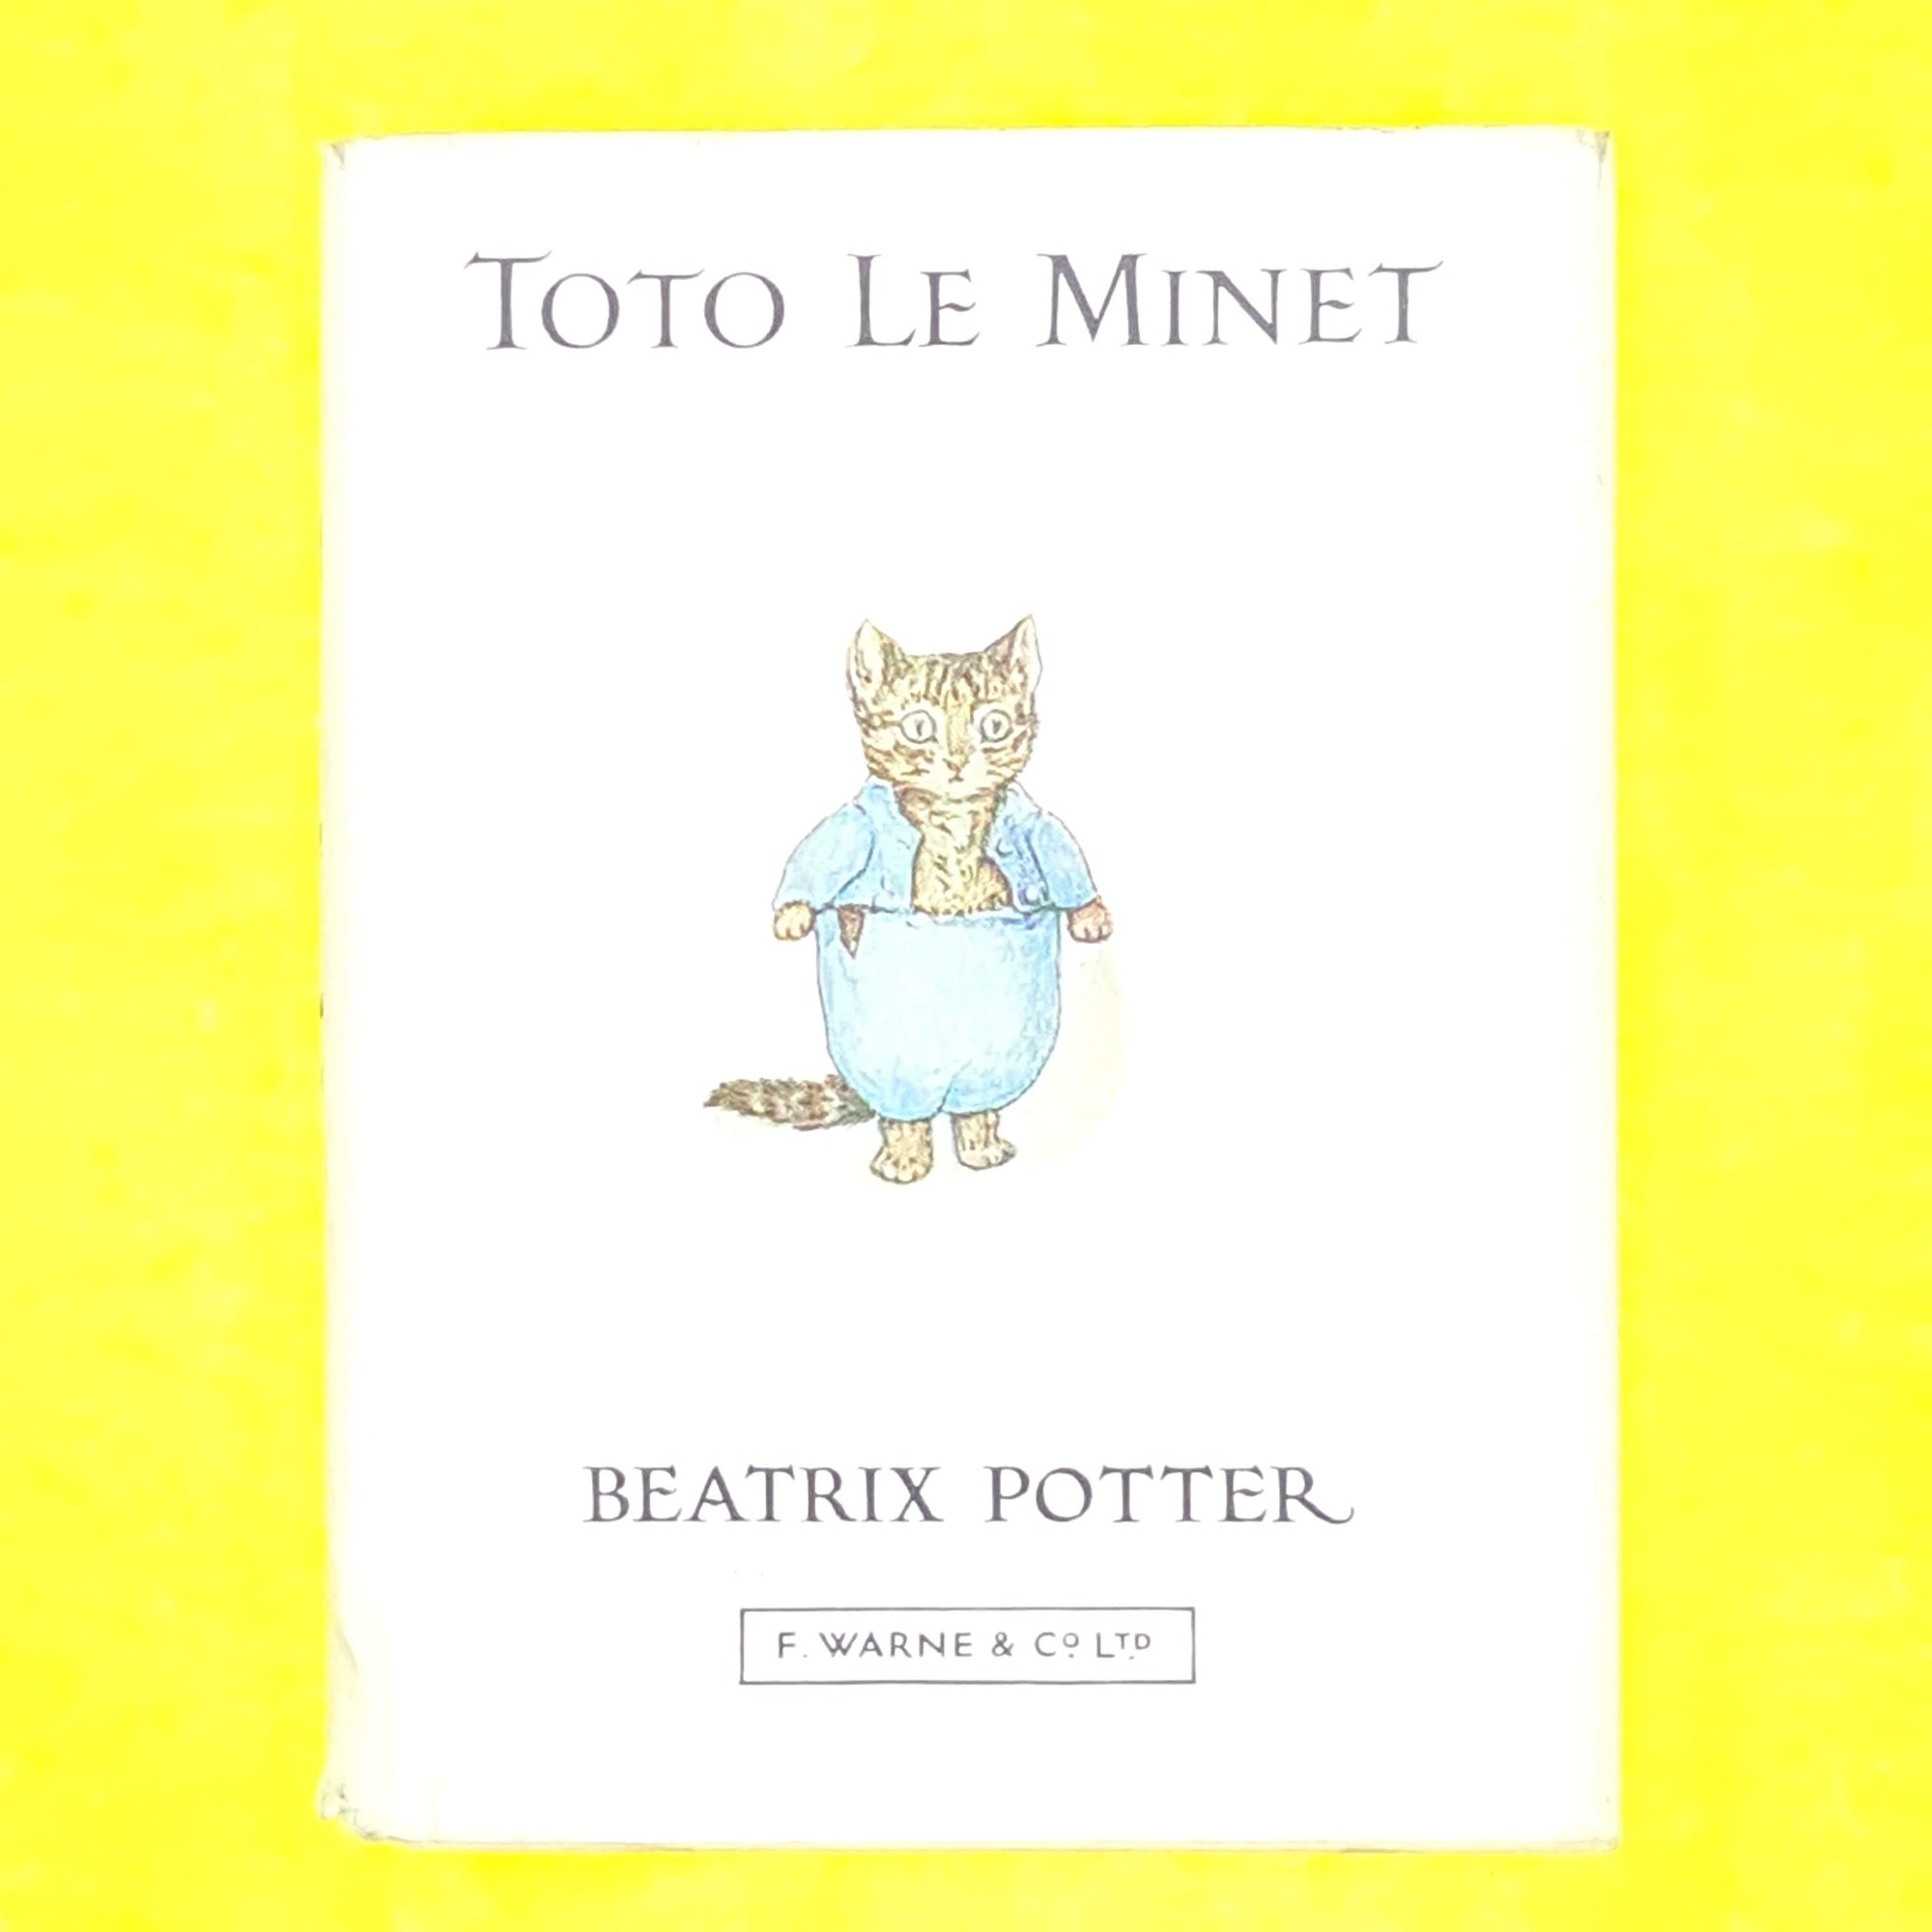 french-language-decorative-books-thrift-tom-kitten-beatrix-potter-country-house-library-old-patterned-1973-warne-antique-vintage-classic-toto-le-minet-